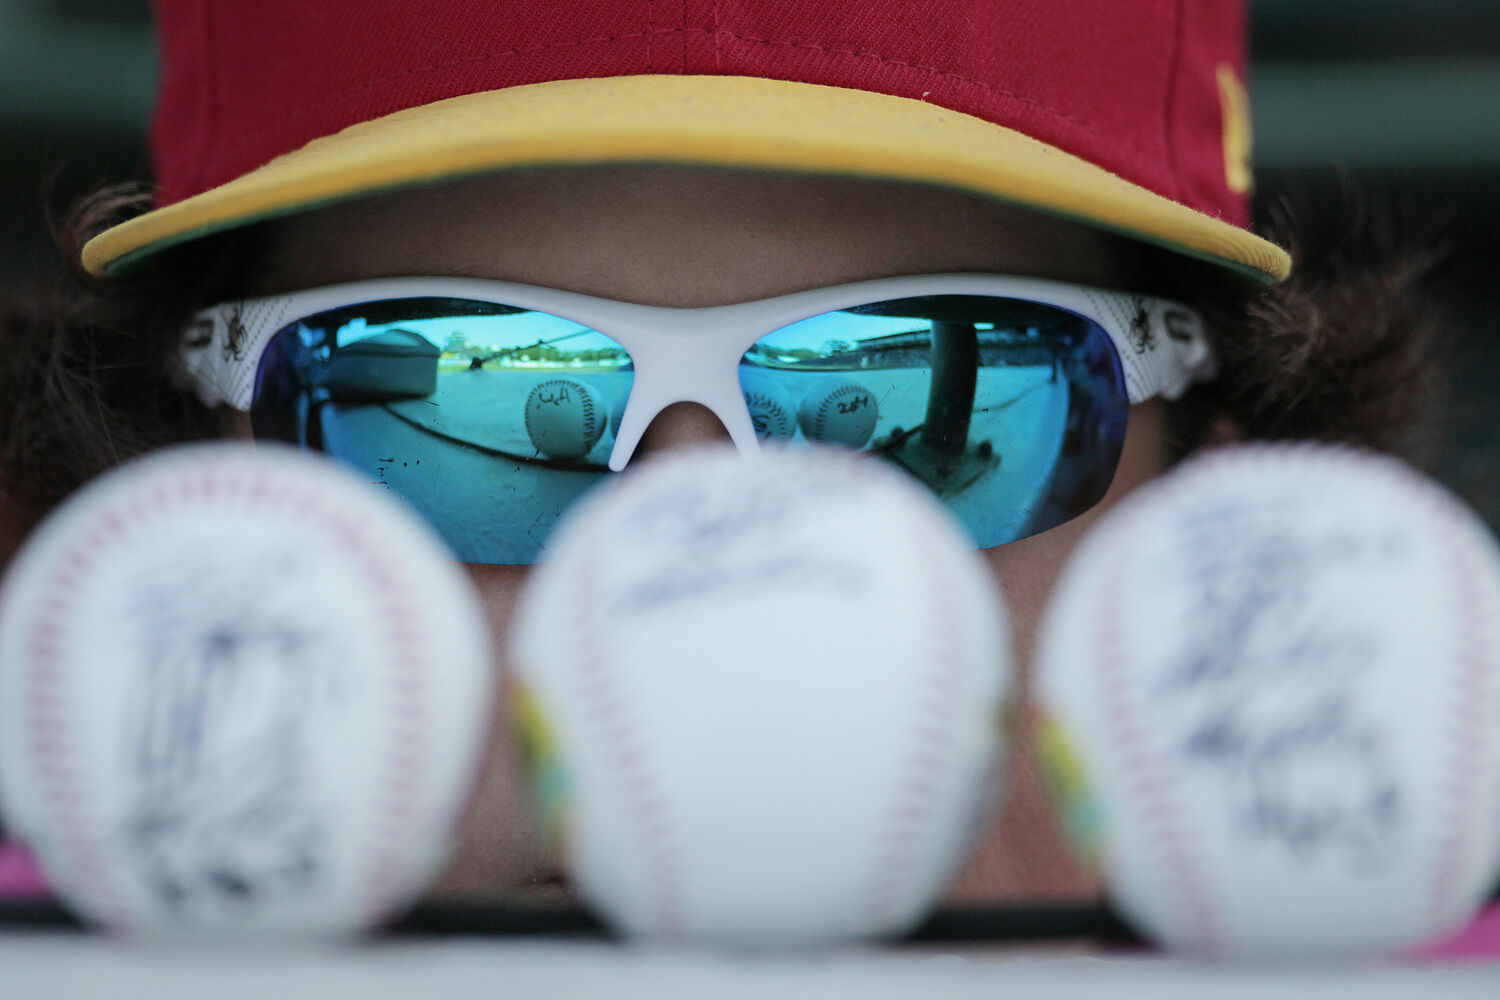 Reegan Warren, 12, shows off his signed baseballs at the All-Star Skills Competition in Winnipeg Monday.